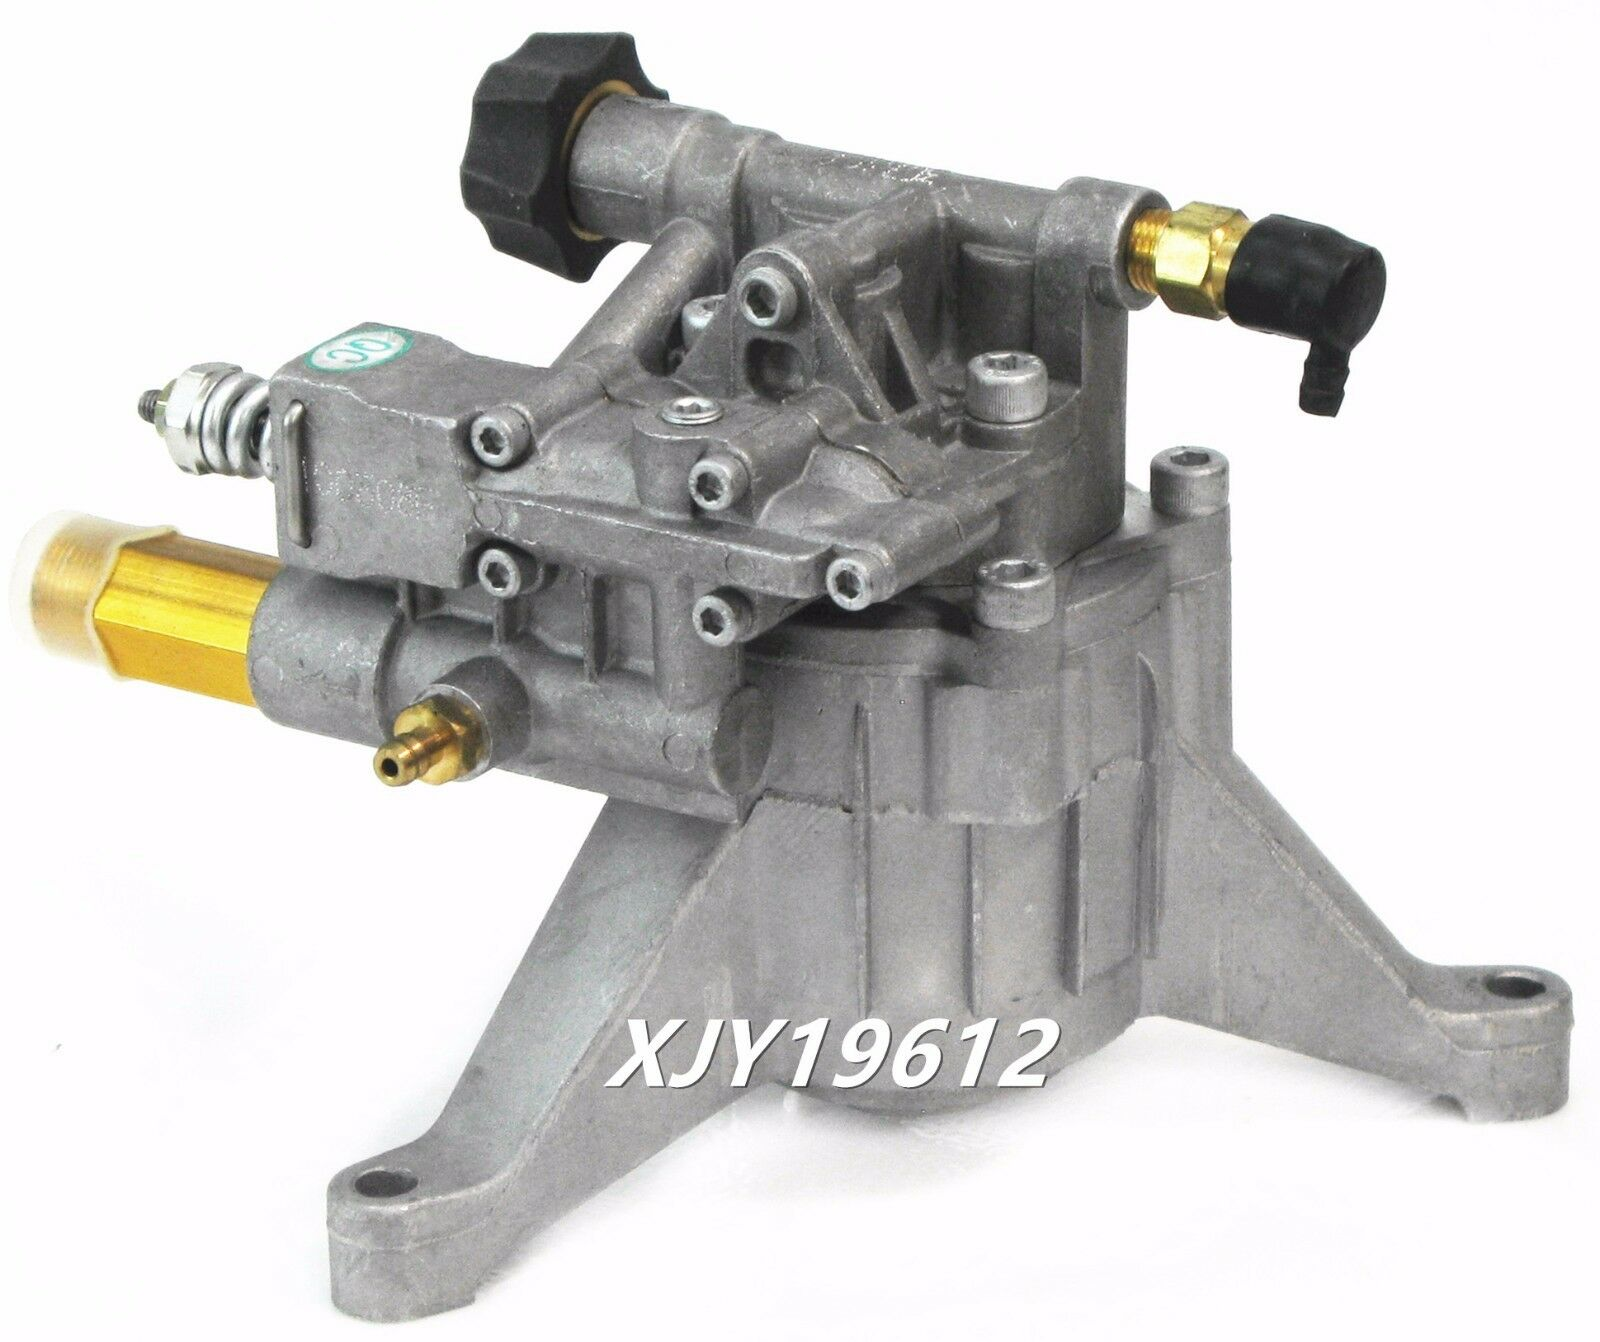 Pressure Washer Water Pump For Excell Vr2522 Vr2320 2800 Psi 1 Of 3free Shipping